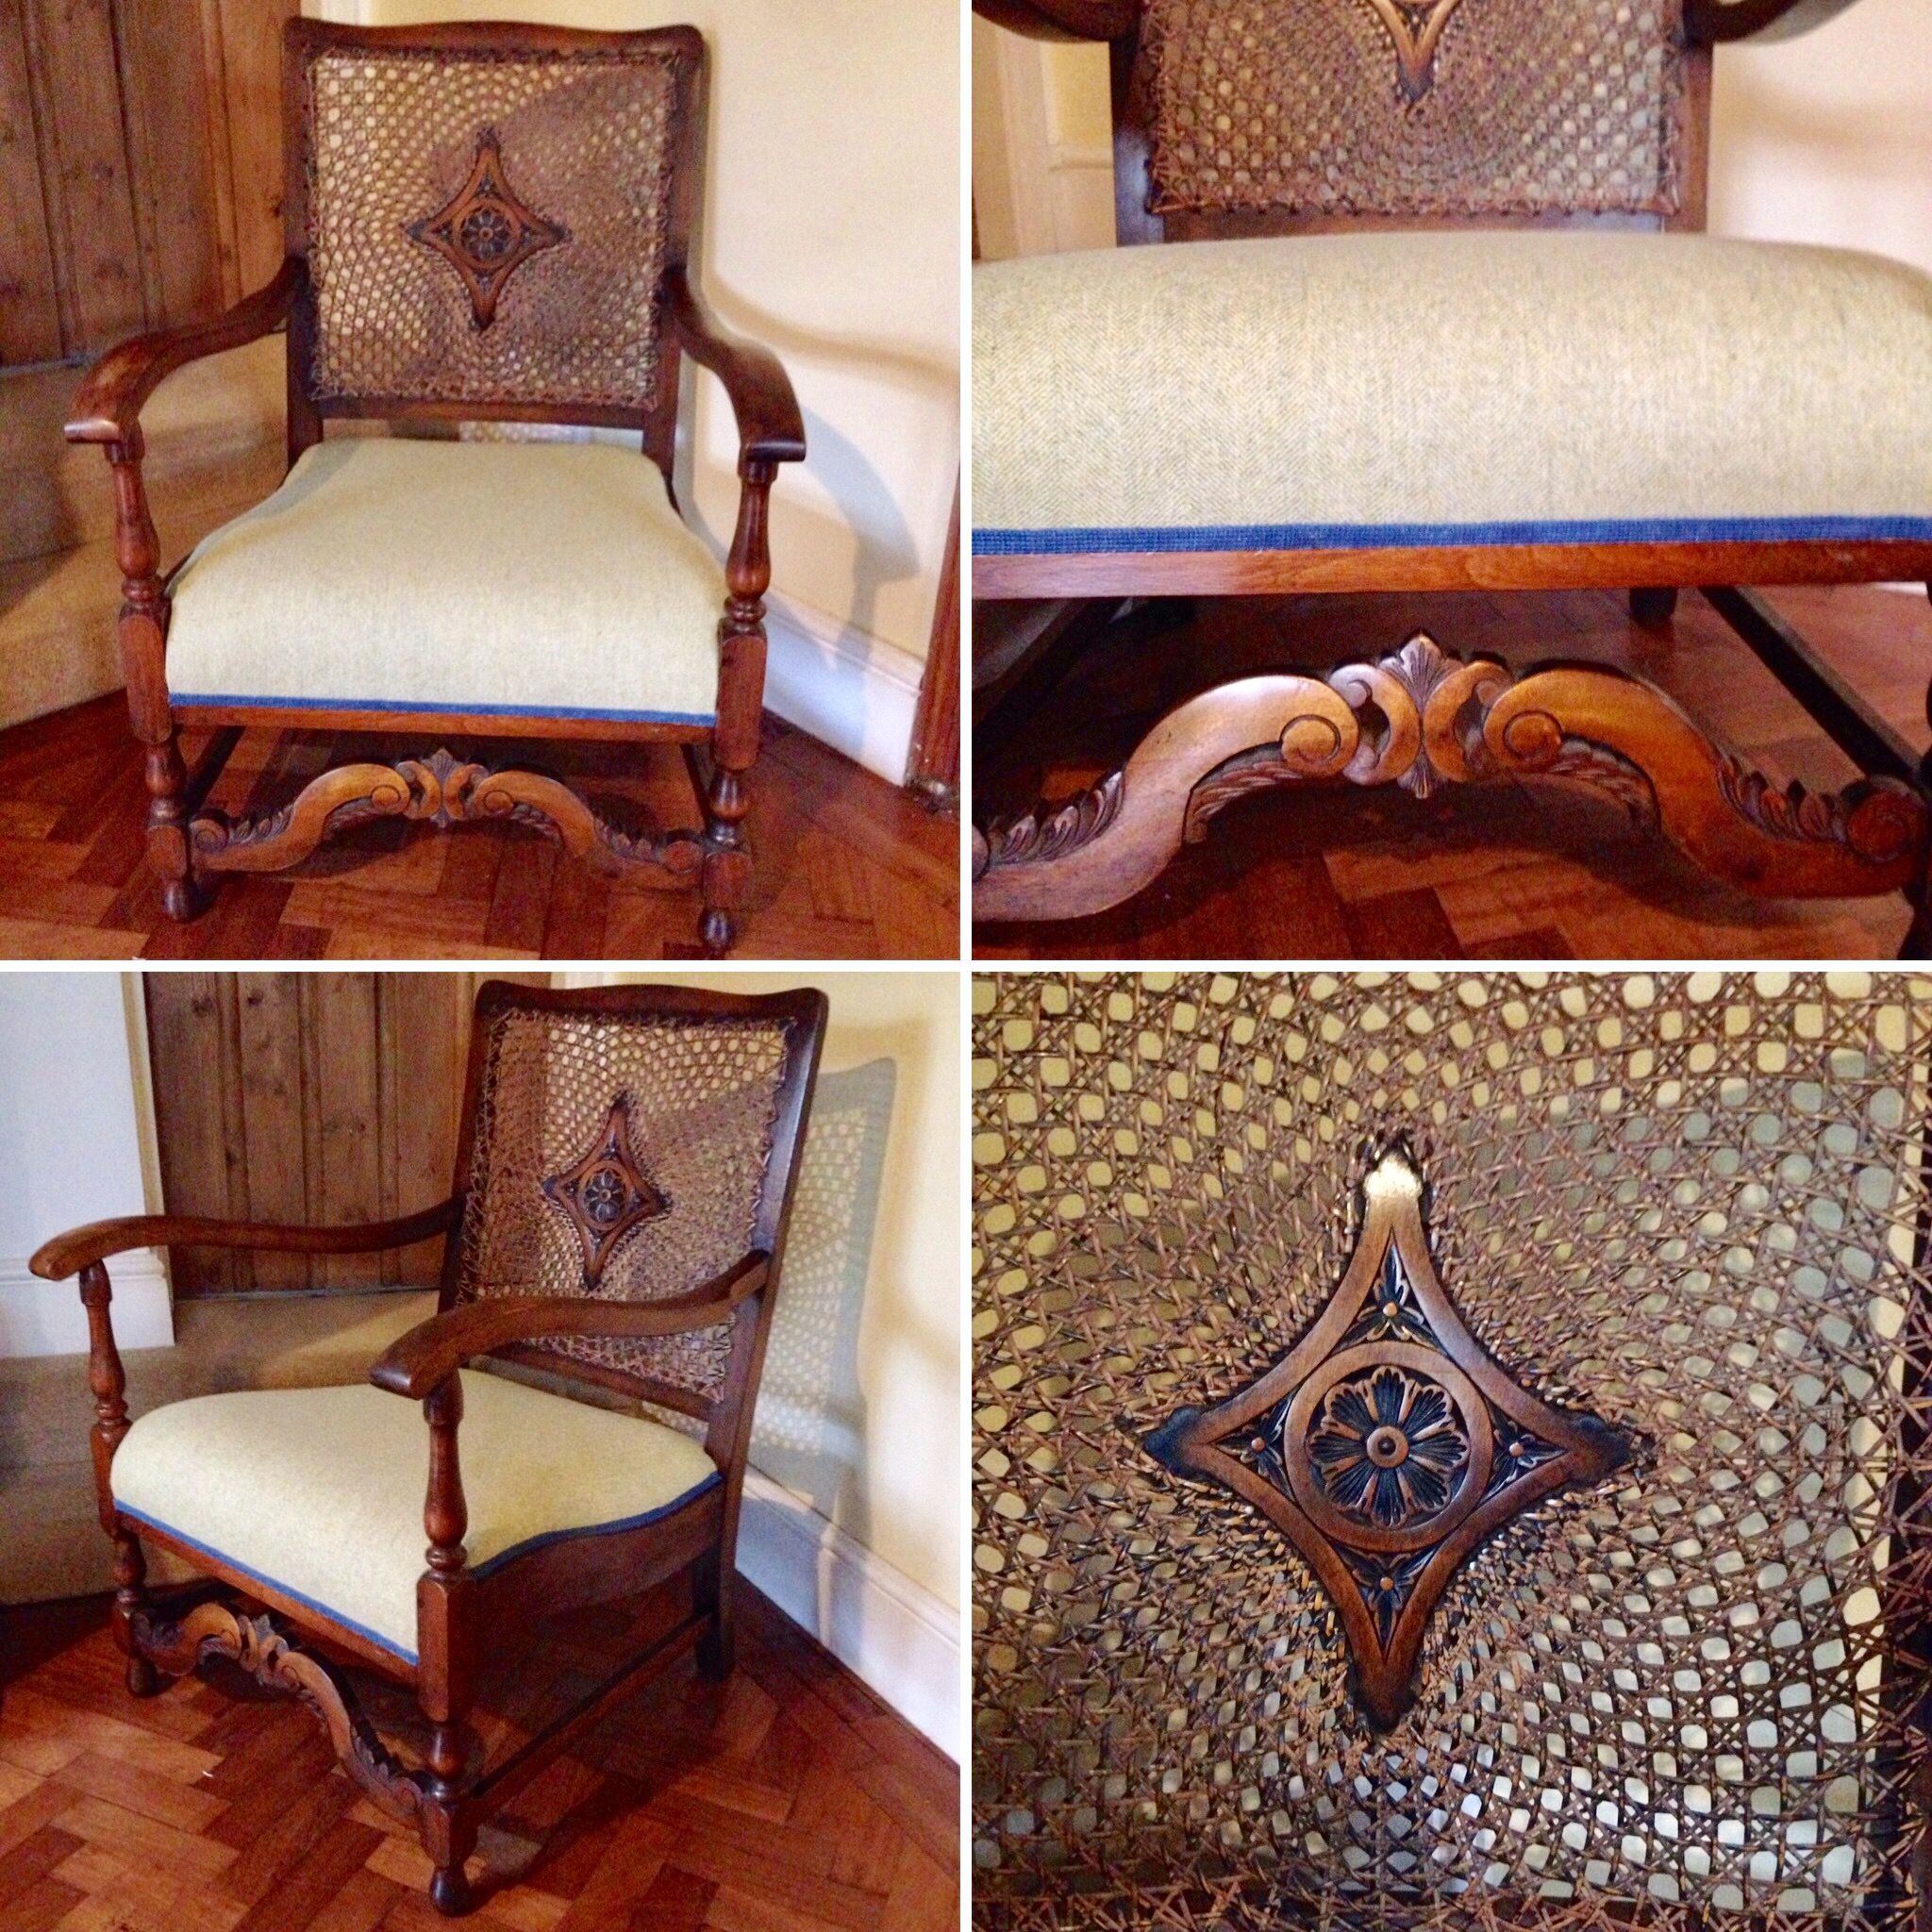 Unique antique cane chair, reupholstered in Abraham Moon